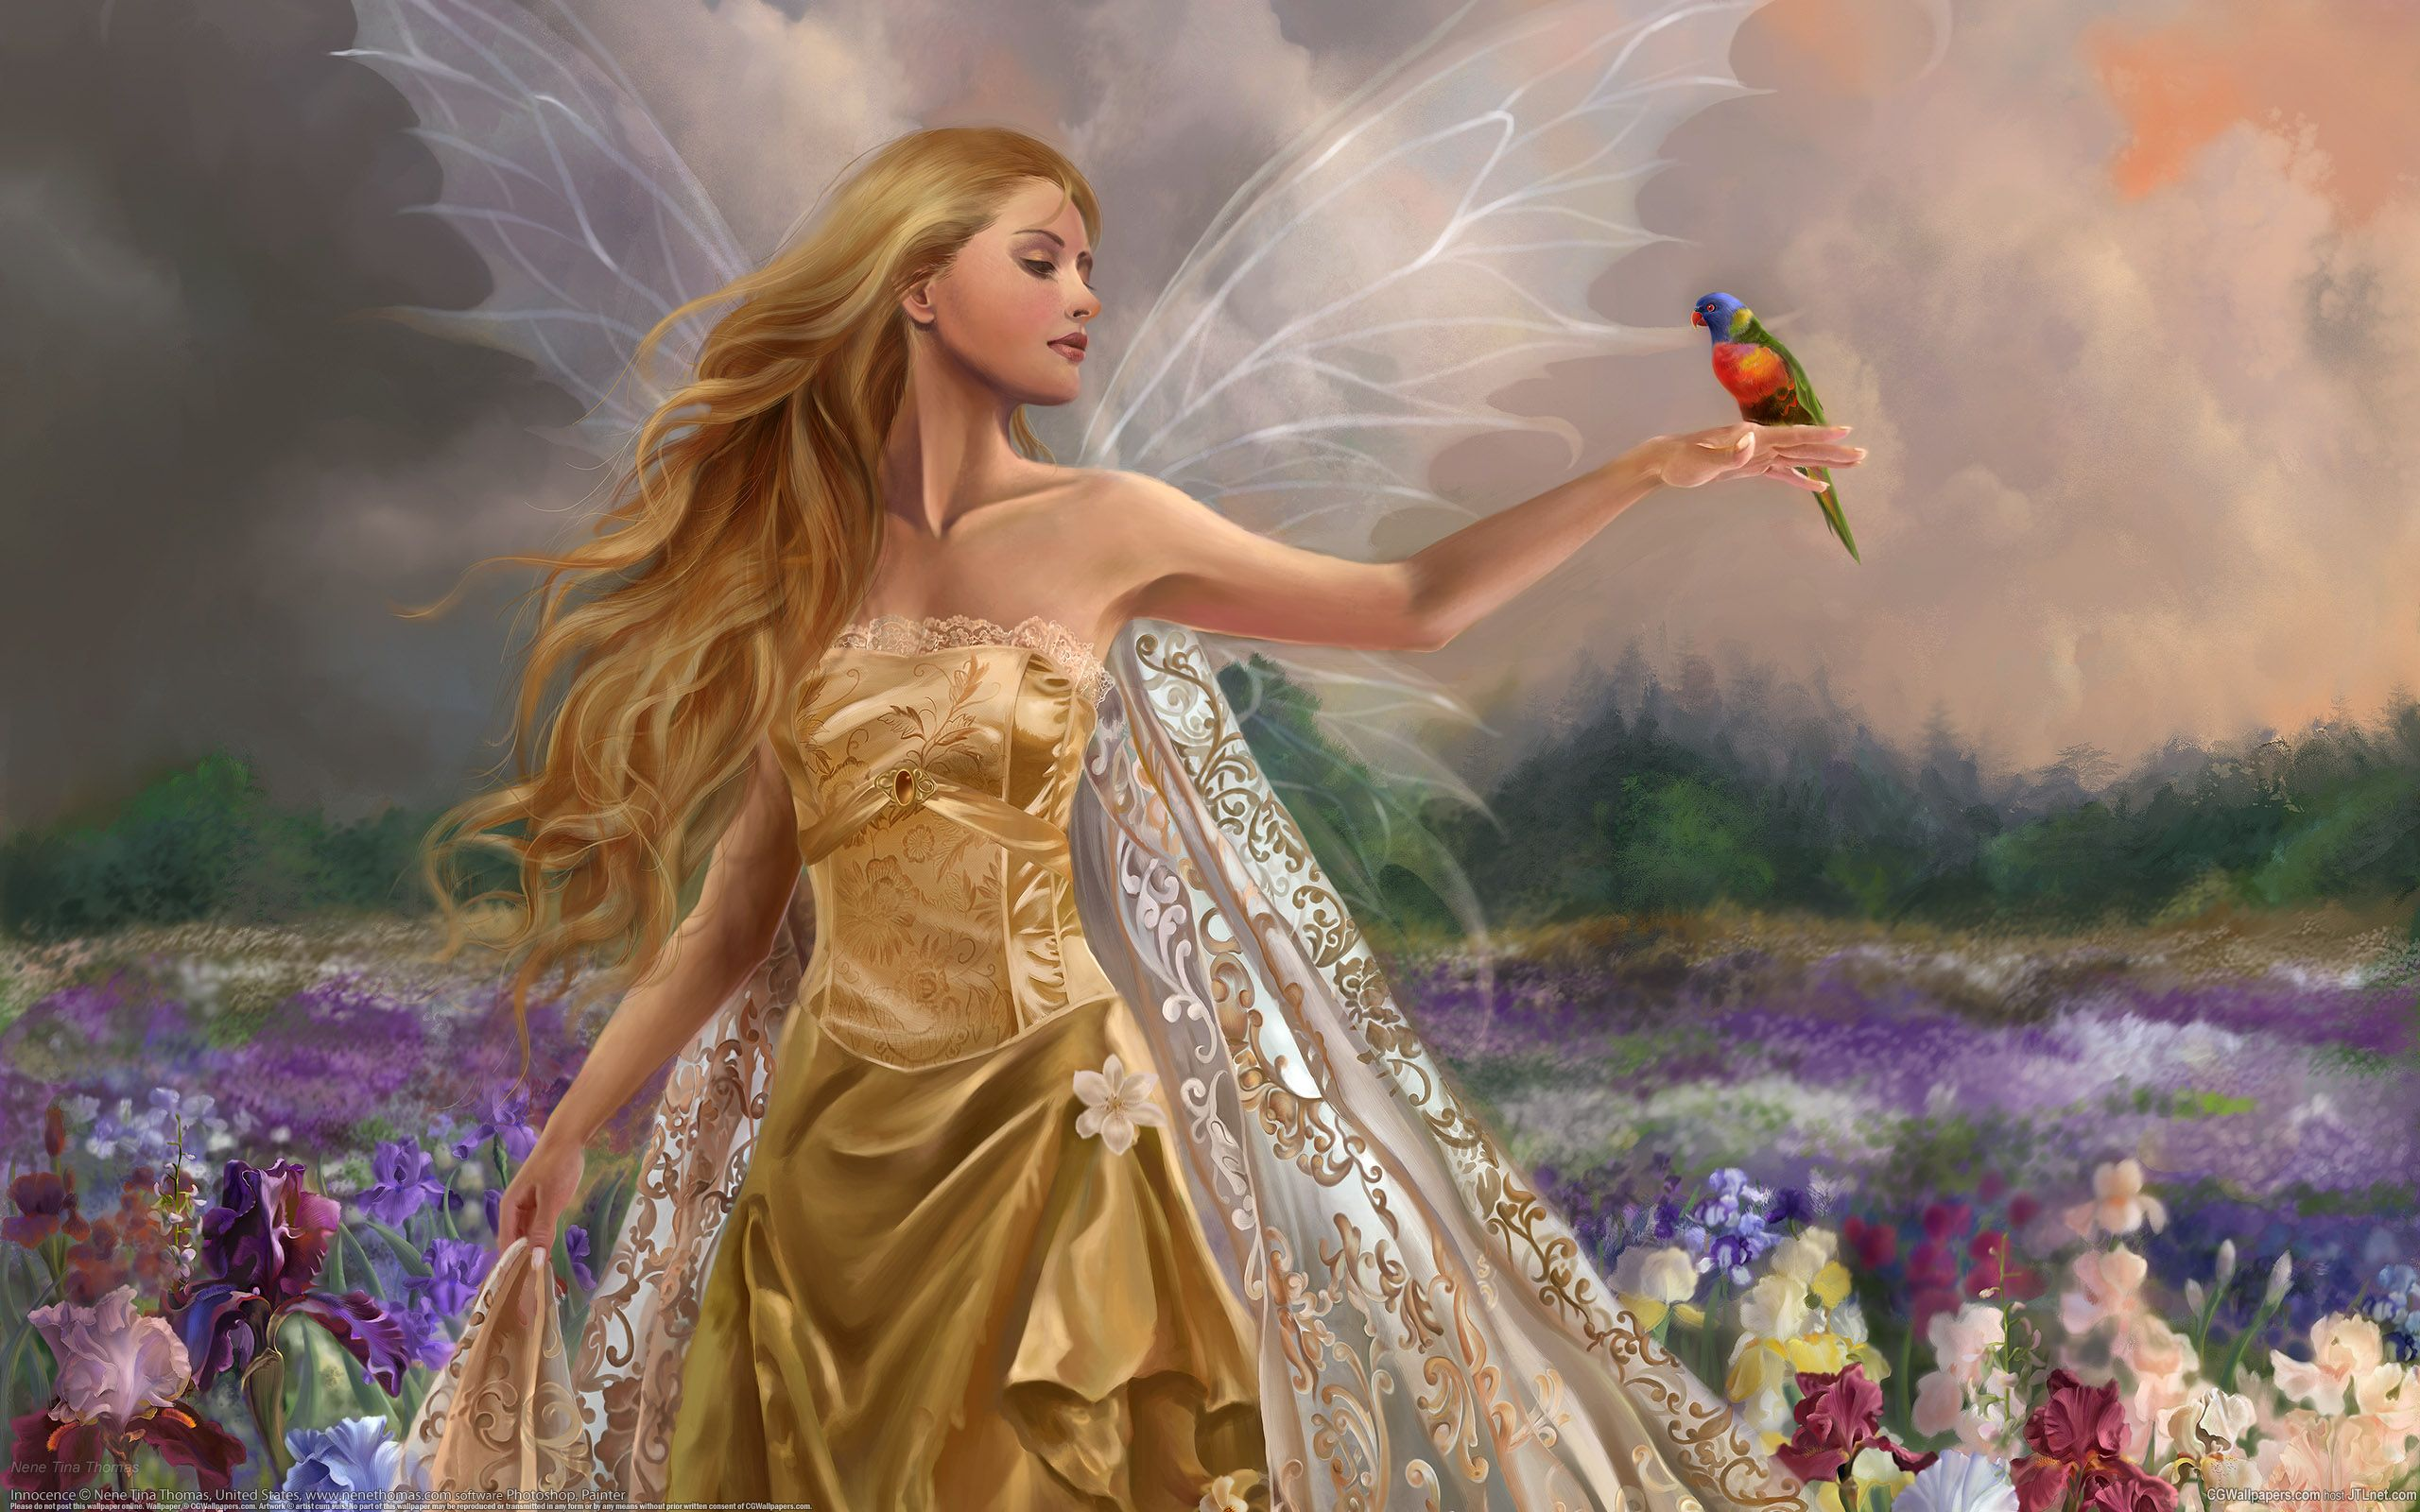 Angels And Fairies Wallpapers Top Free Angels And Fairies Backgrounds Wallpaperaccess